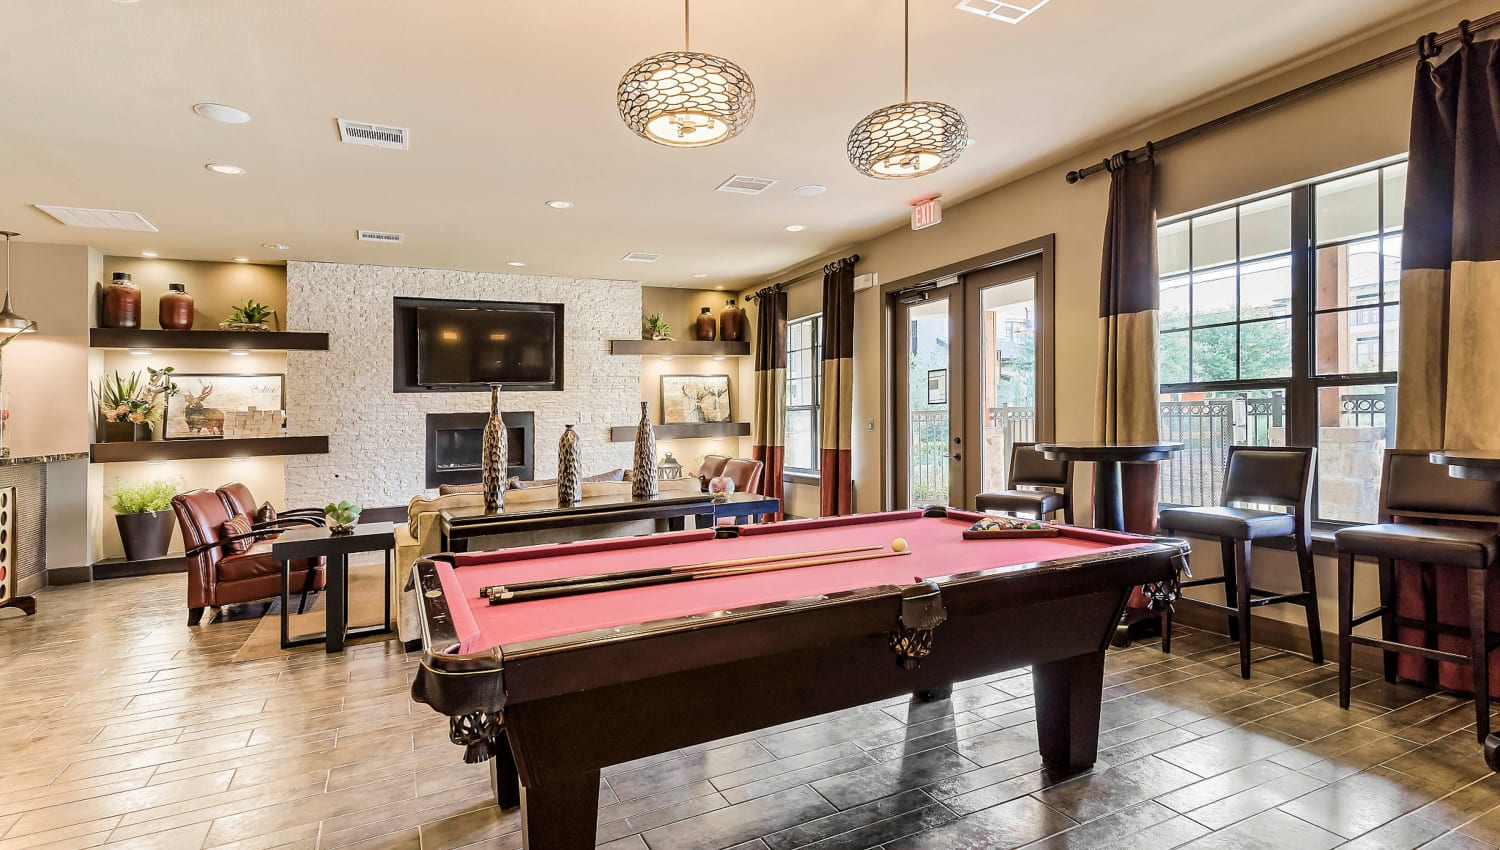 Billiards table and more in the game room at Sedona Ranch in Odessa, Texas